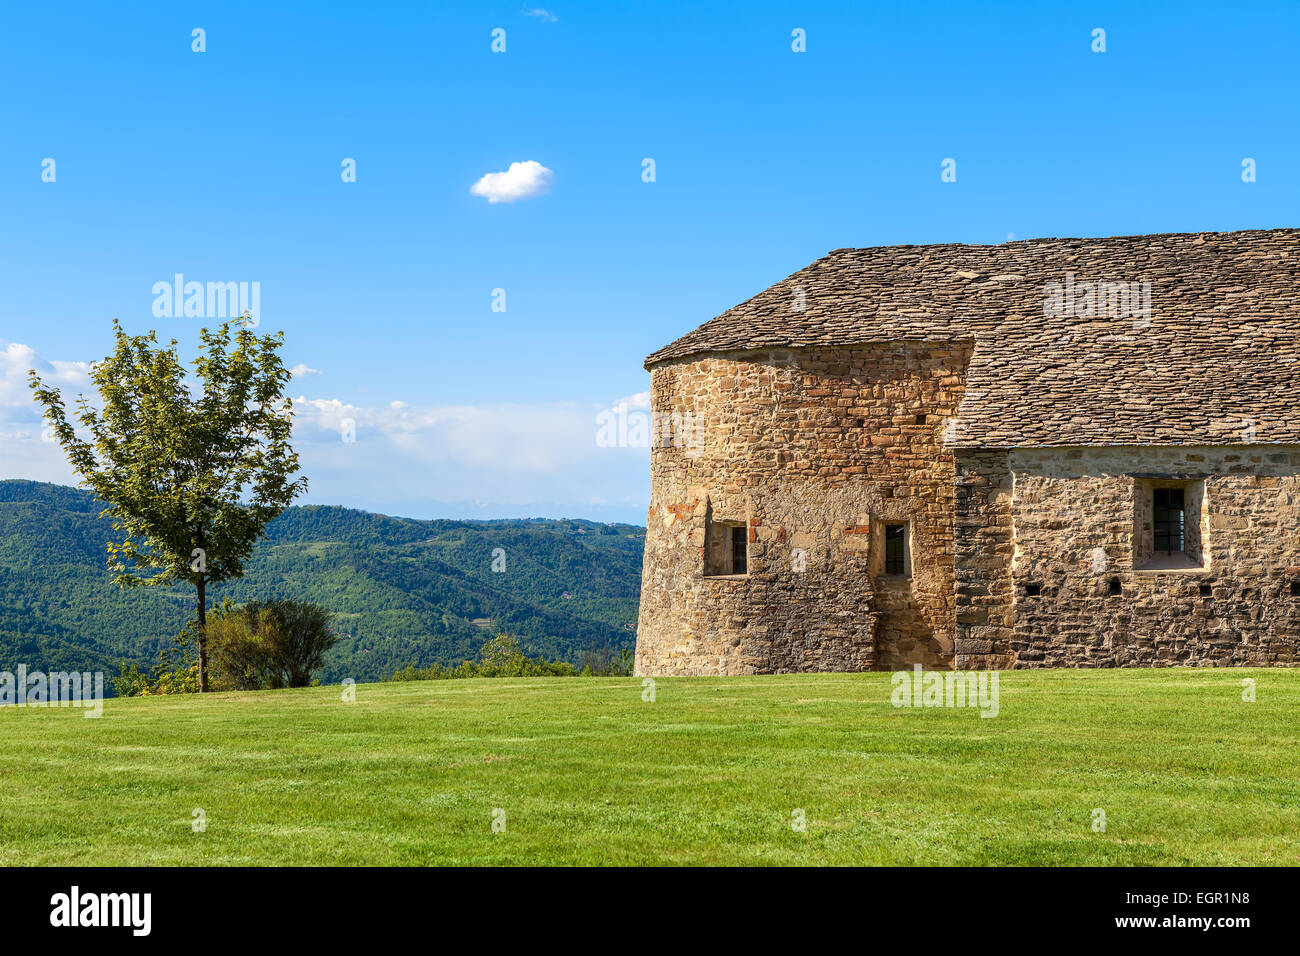 Lone tree and old stone church on green lawn under blue sky in Piedmont, Northern Italy. - Stock Image